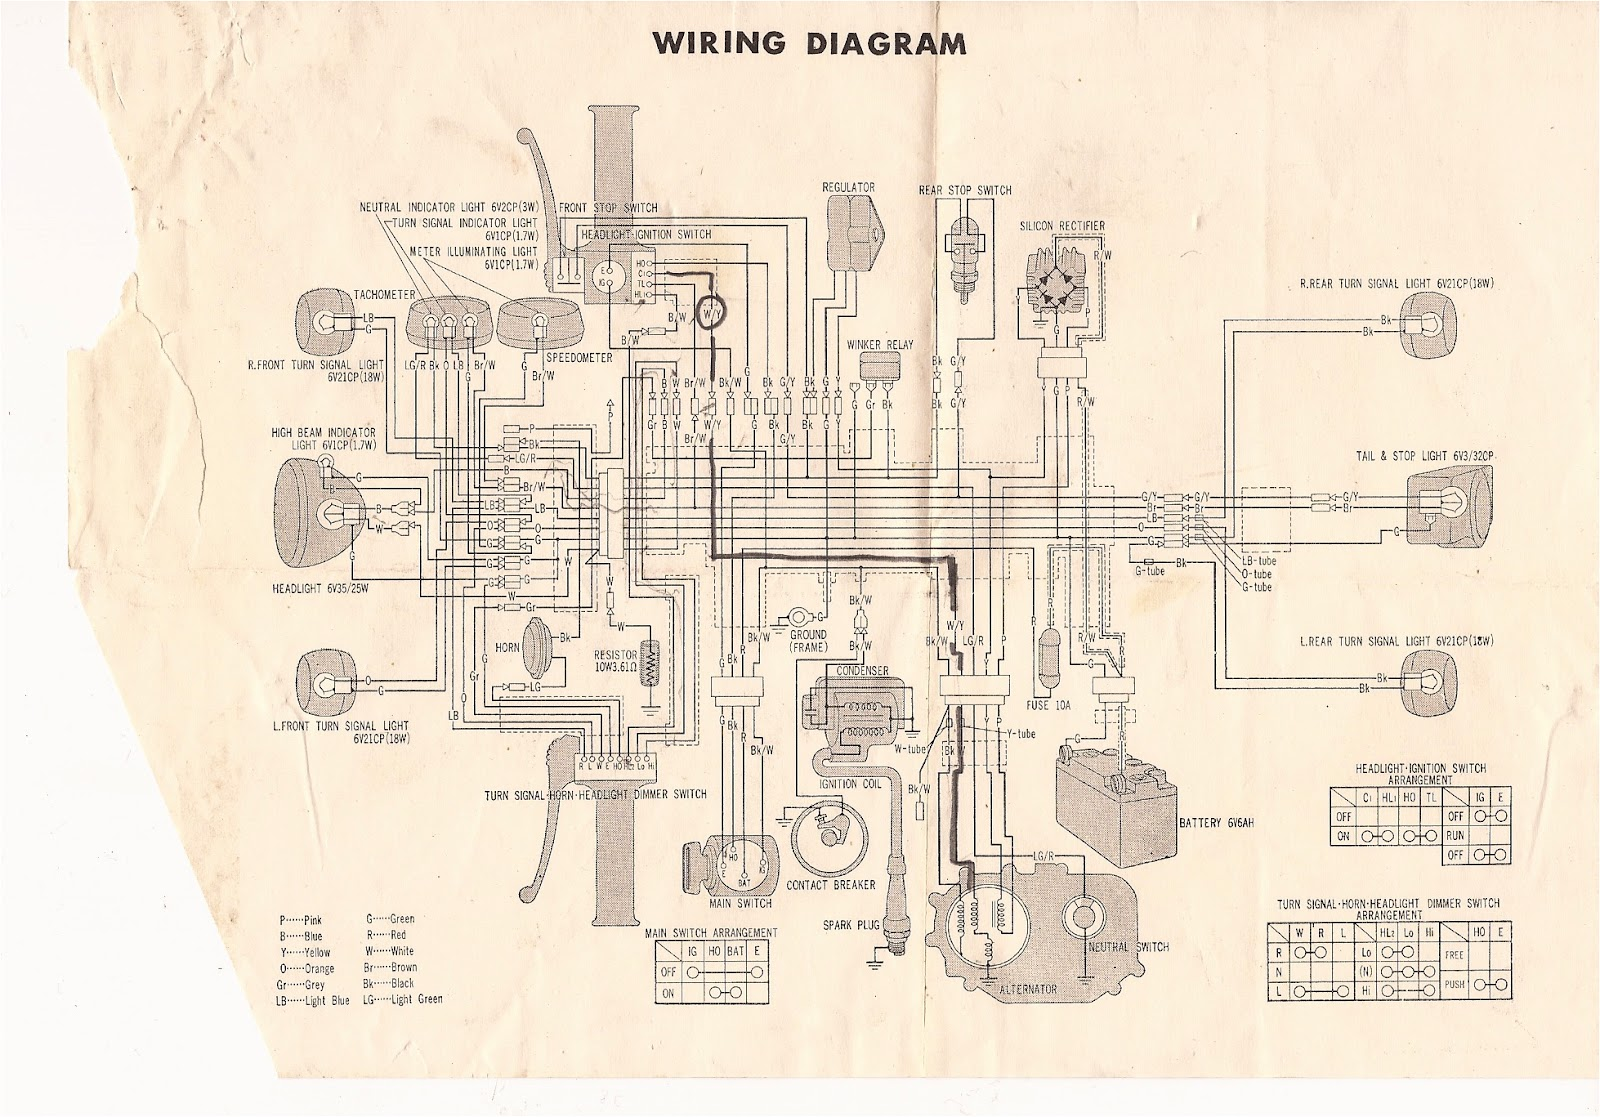 XL350+Wiring+diagram cb360 wiring diagram yamaha rd 350 wiring diagram \u2022 wiring 2014 yamaha bolt wiring diagram at soozxer.org